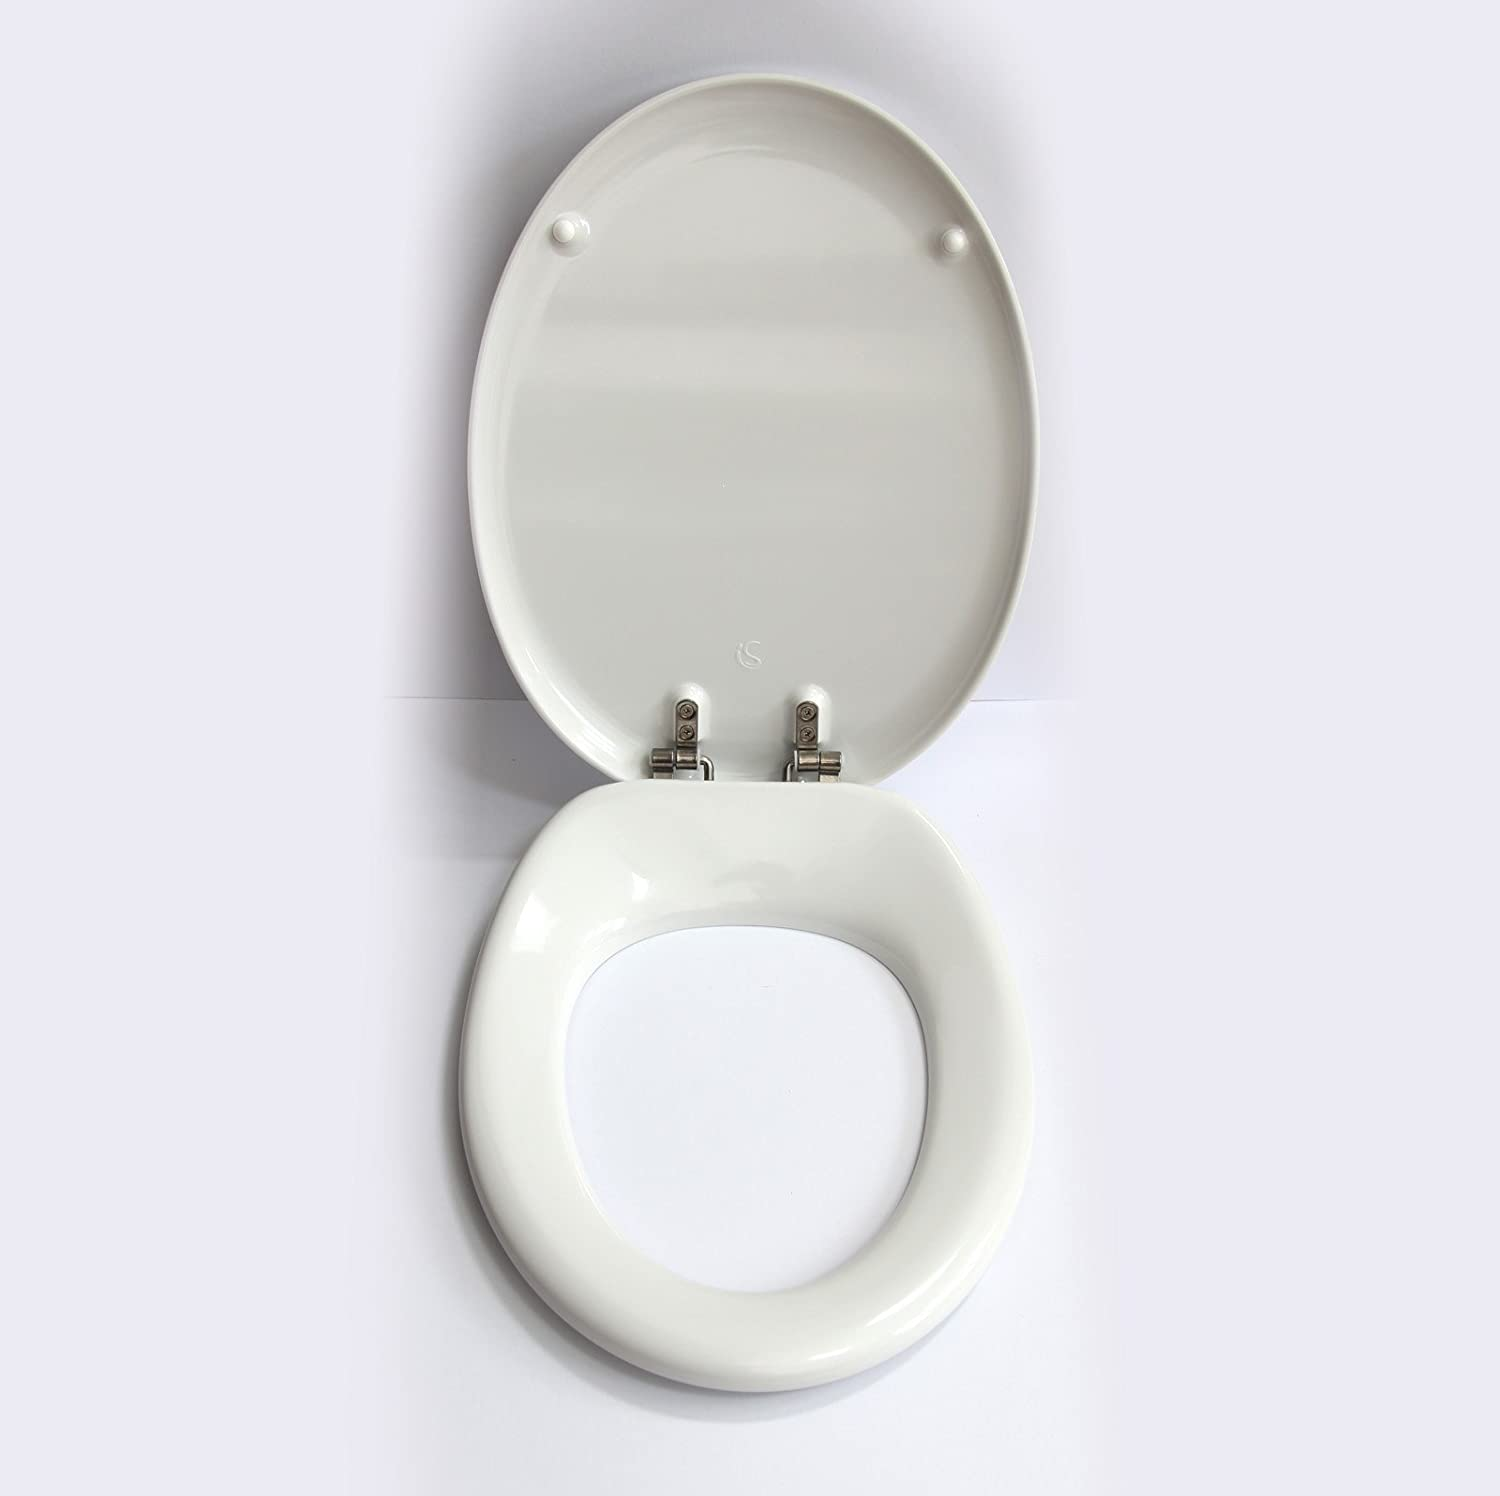 Ideal Standard K704301 White Purity Toilet Seat and Cover, Toilet by ...